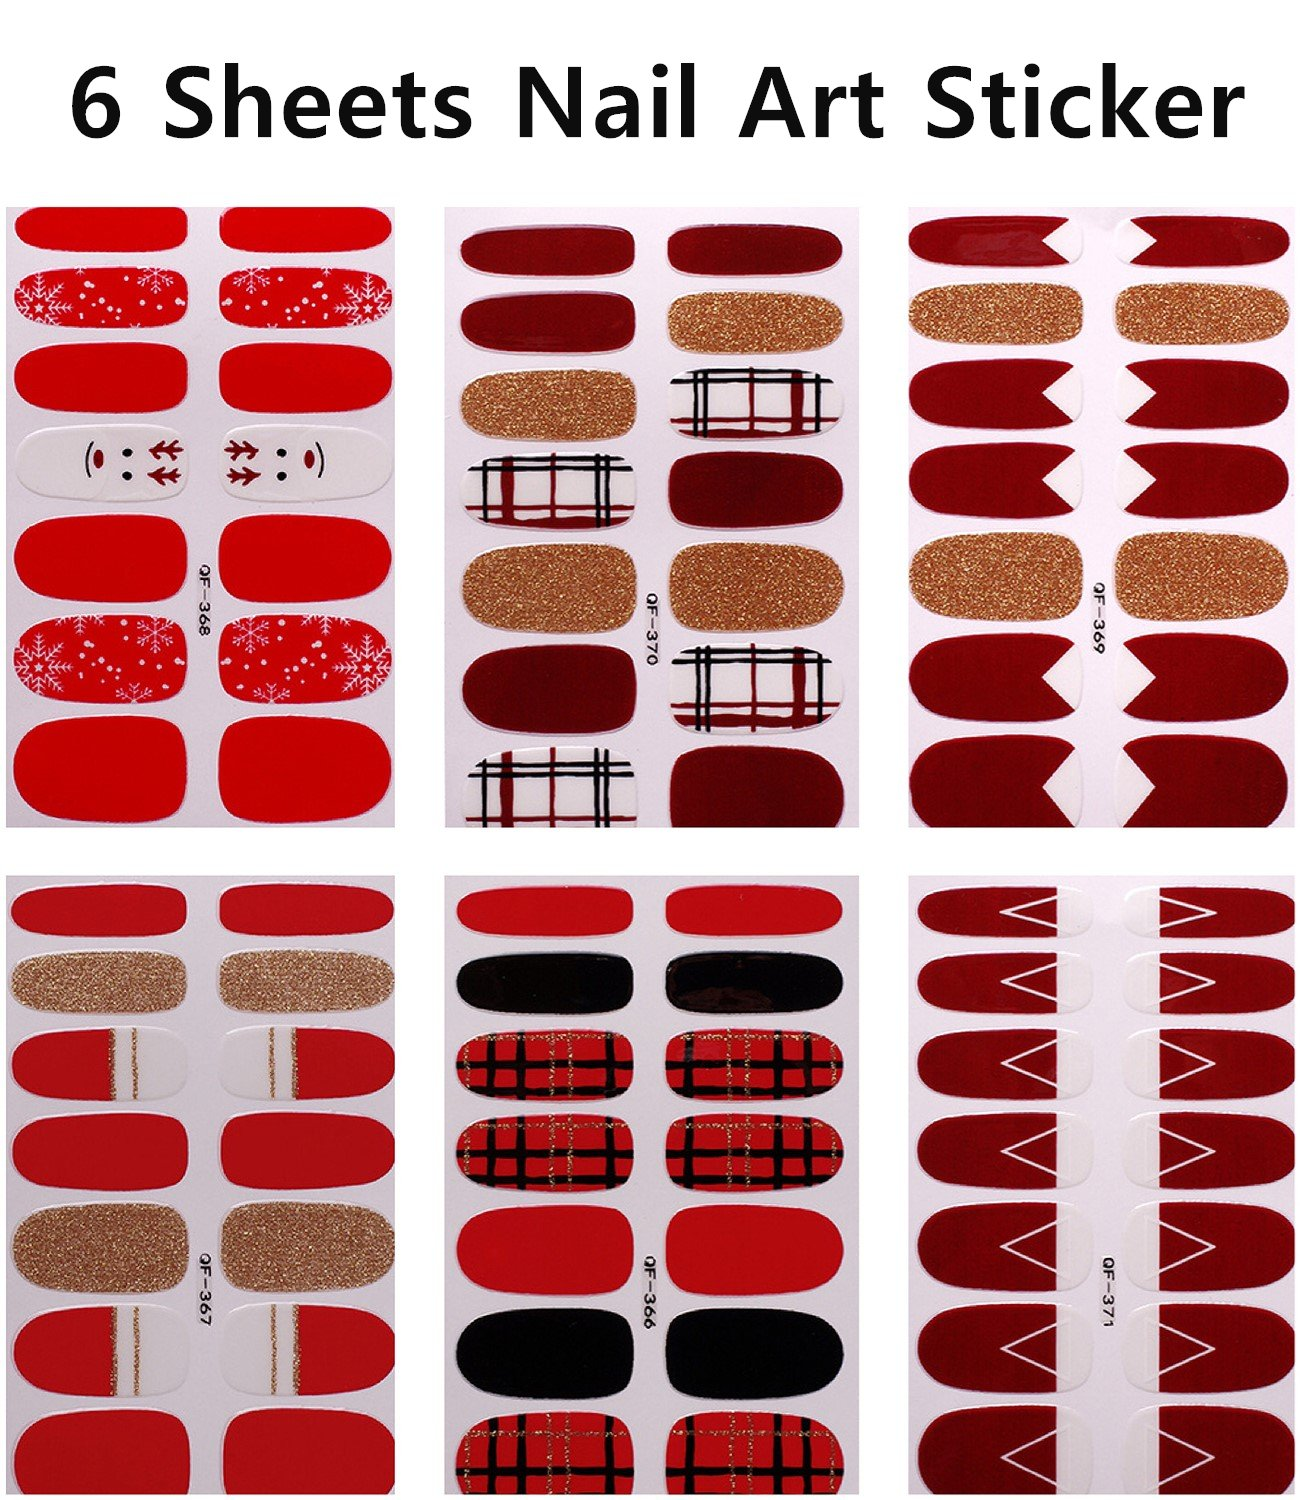 6 Sheets Waterproof Nail Stickers 3D Art Nail Sticker for Women Nail Art Transfer Decals Sticker Glitter Series DIY Nail Polish Strips Wraps for Party (style1)